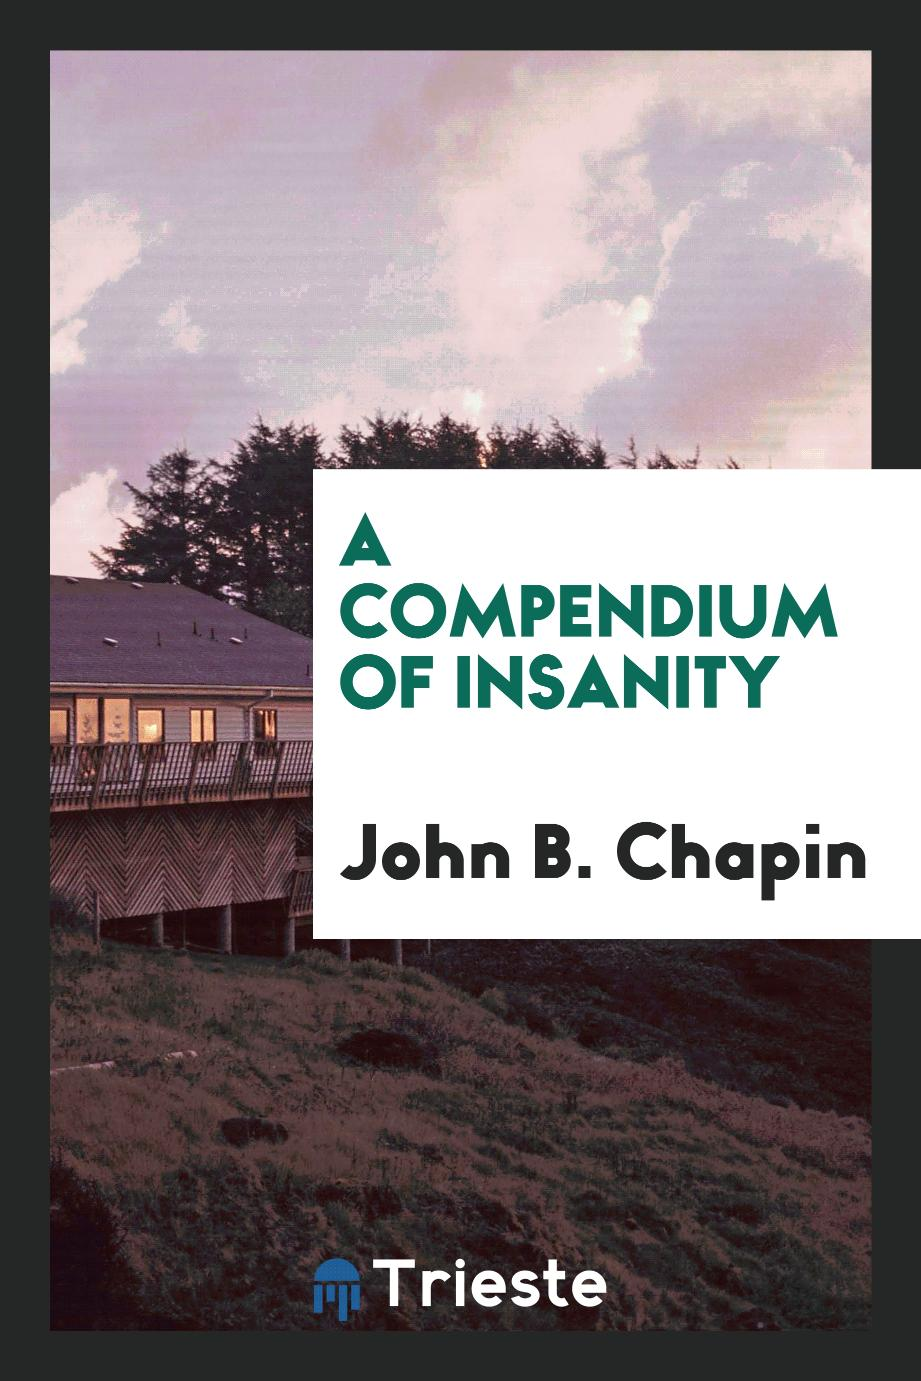 A Compendium of Insanity